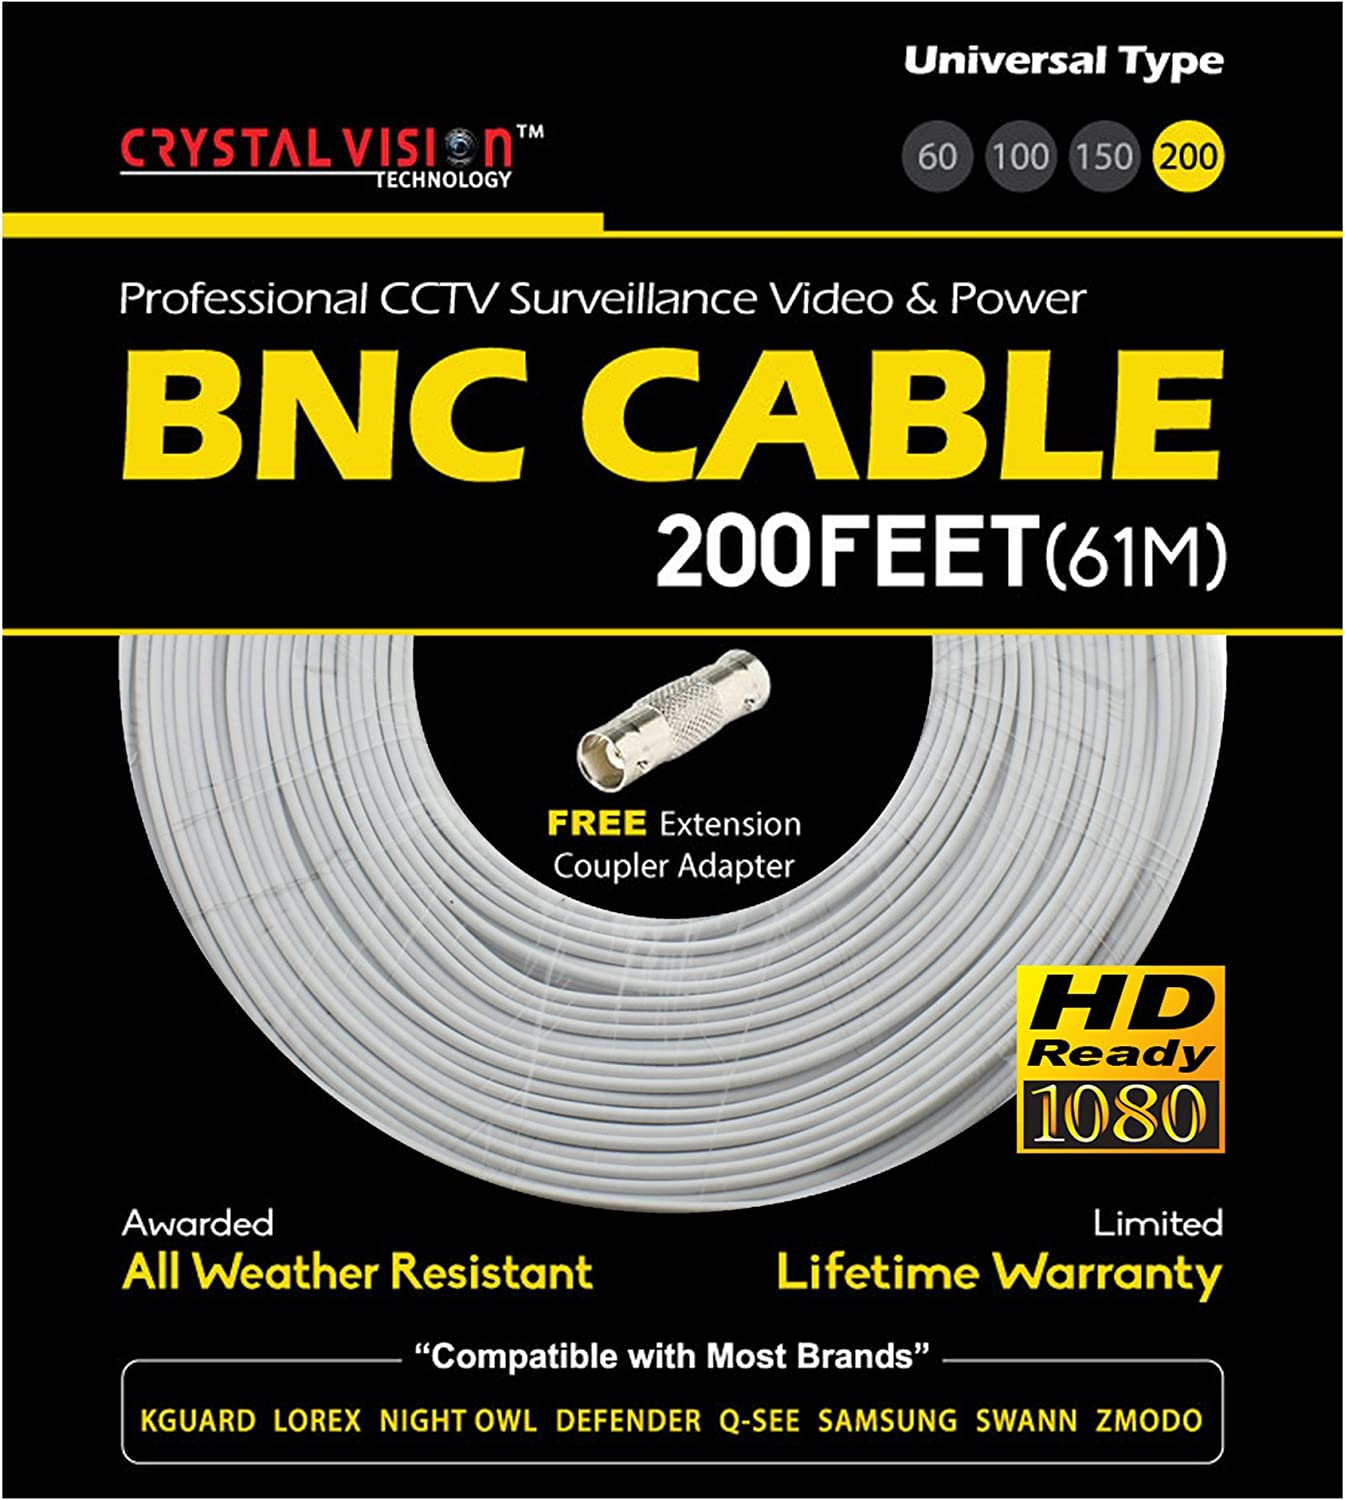 NEW High Quality 3 100FT Thick BNC EXTENSION CABLE for Samsung,Swann,Zmodo,Lorex